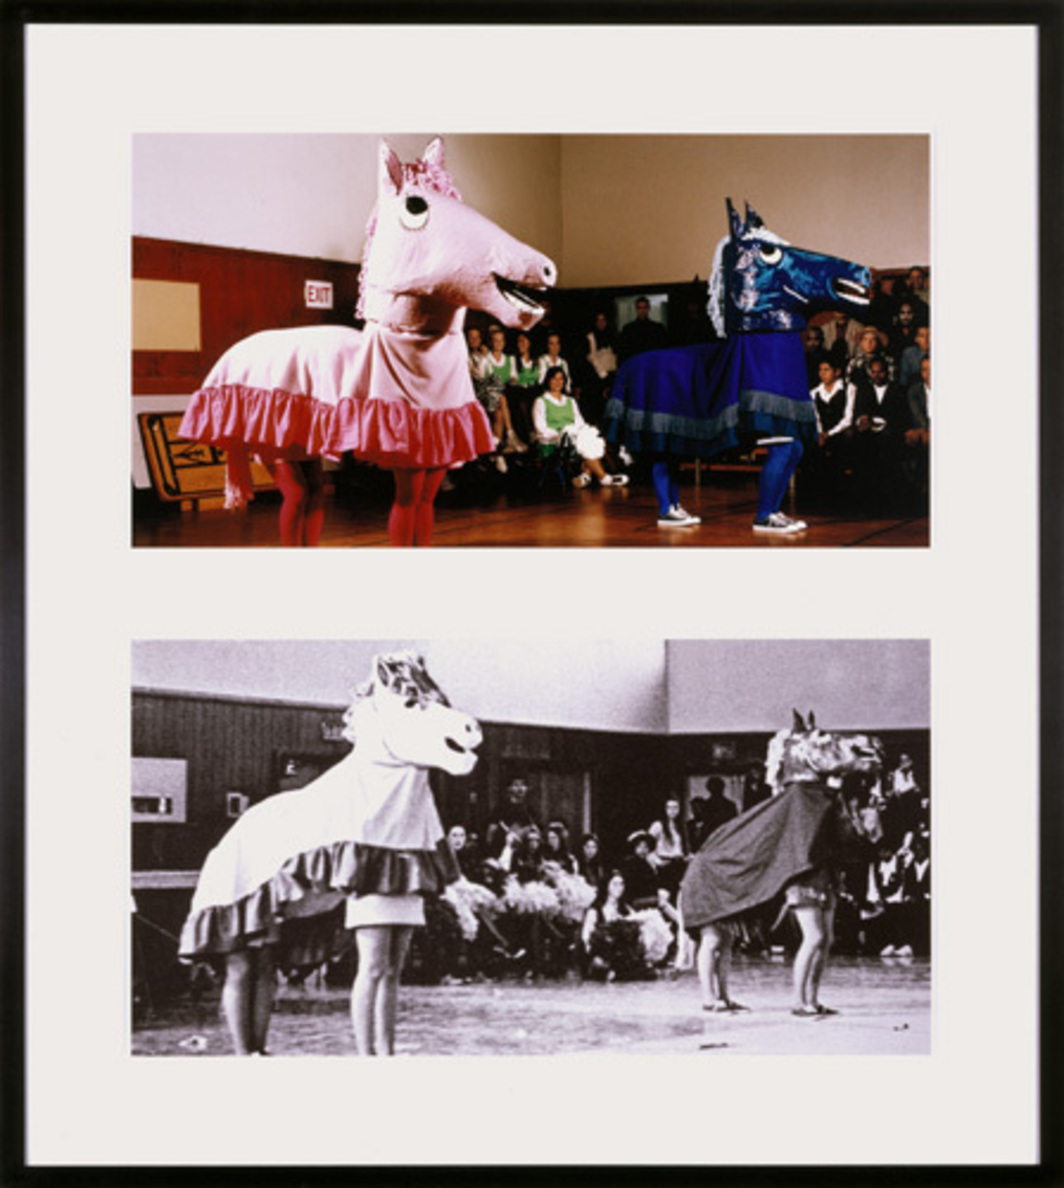 "Mike Kelley, Extracurricular Activity Projective Reconstruction #32 (Horse Dance of the False Virgin), 2005, chromogenic print and black-and-white Piezo print on rag paper, 45 x 40"". Courtesy of the artist and Performa."